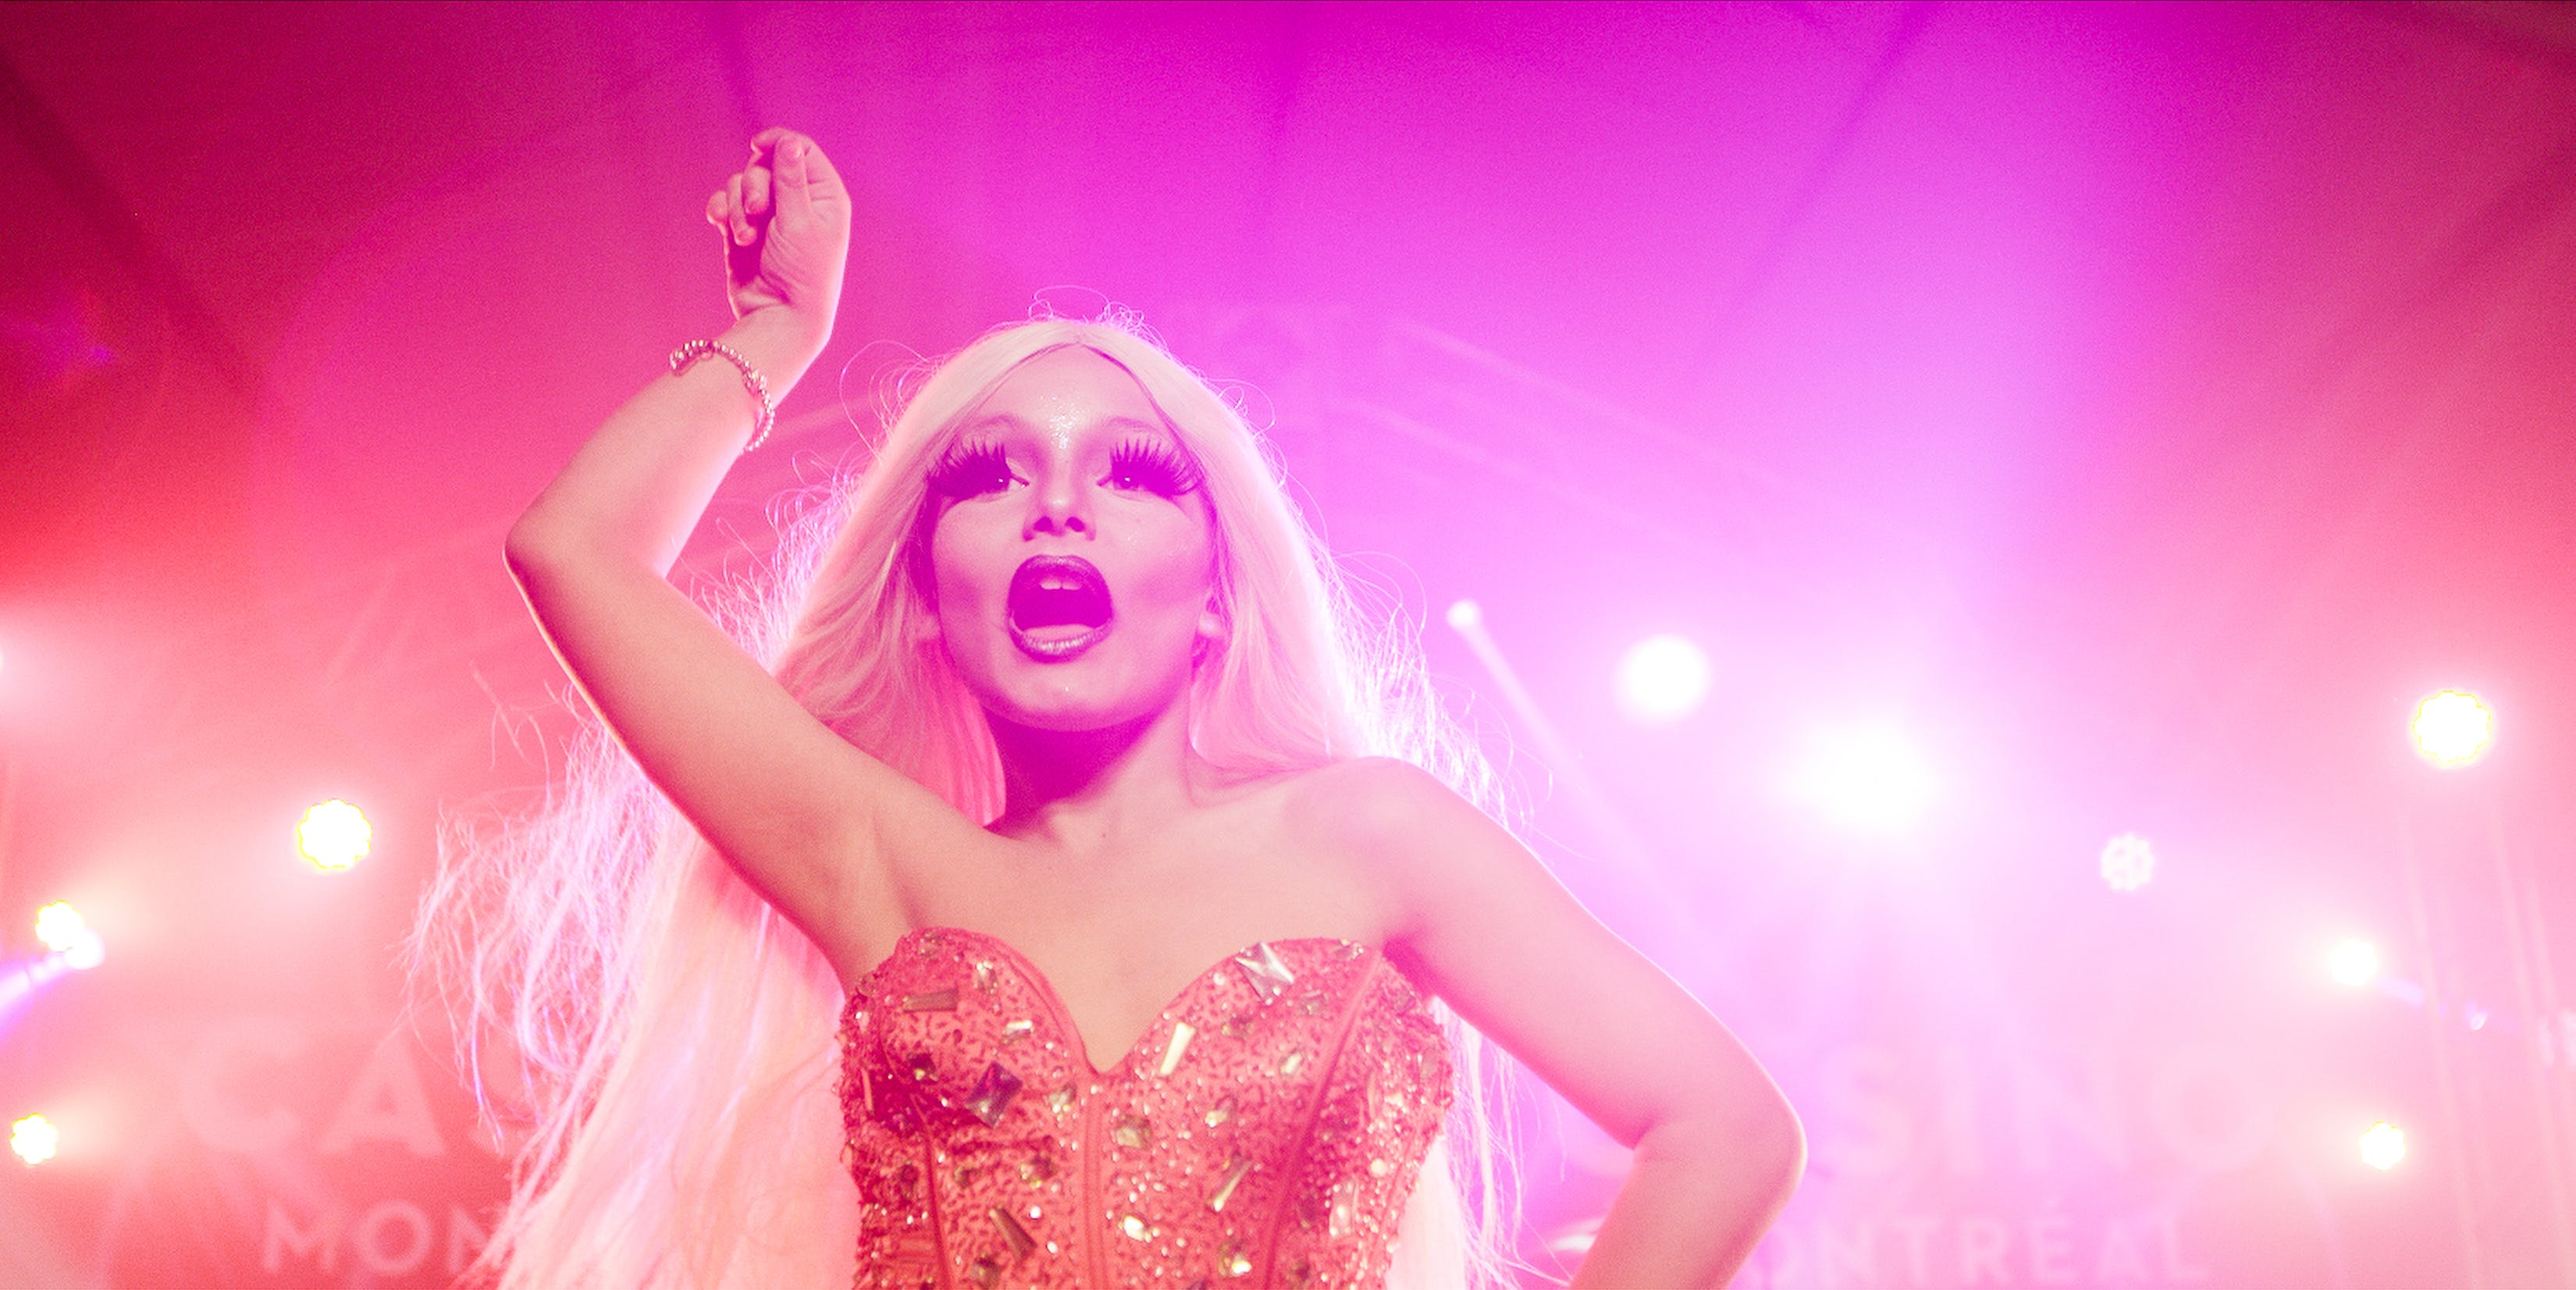 Megan Wennberg explores when kids do drag–and the homophobia that follows–in 'Drag Kids'